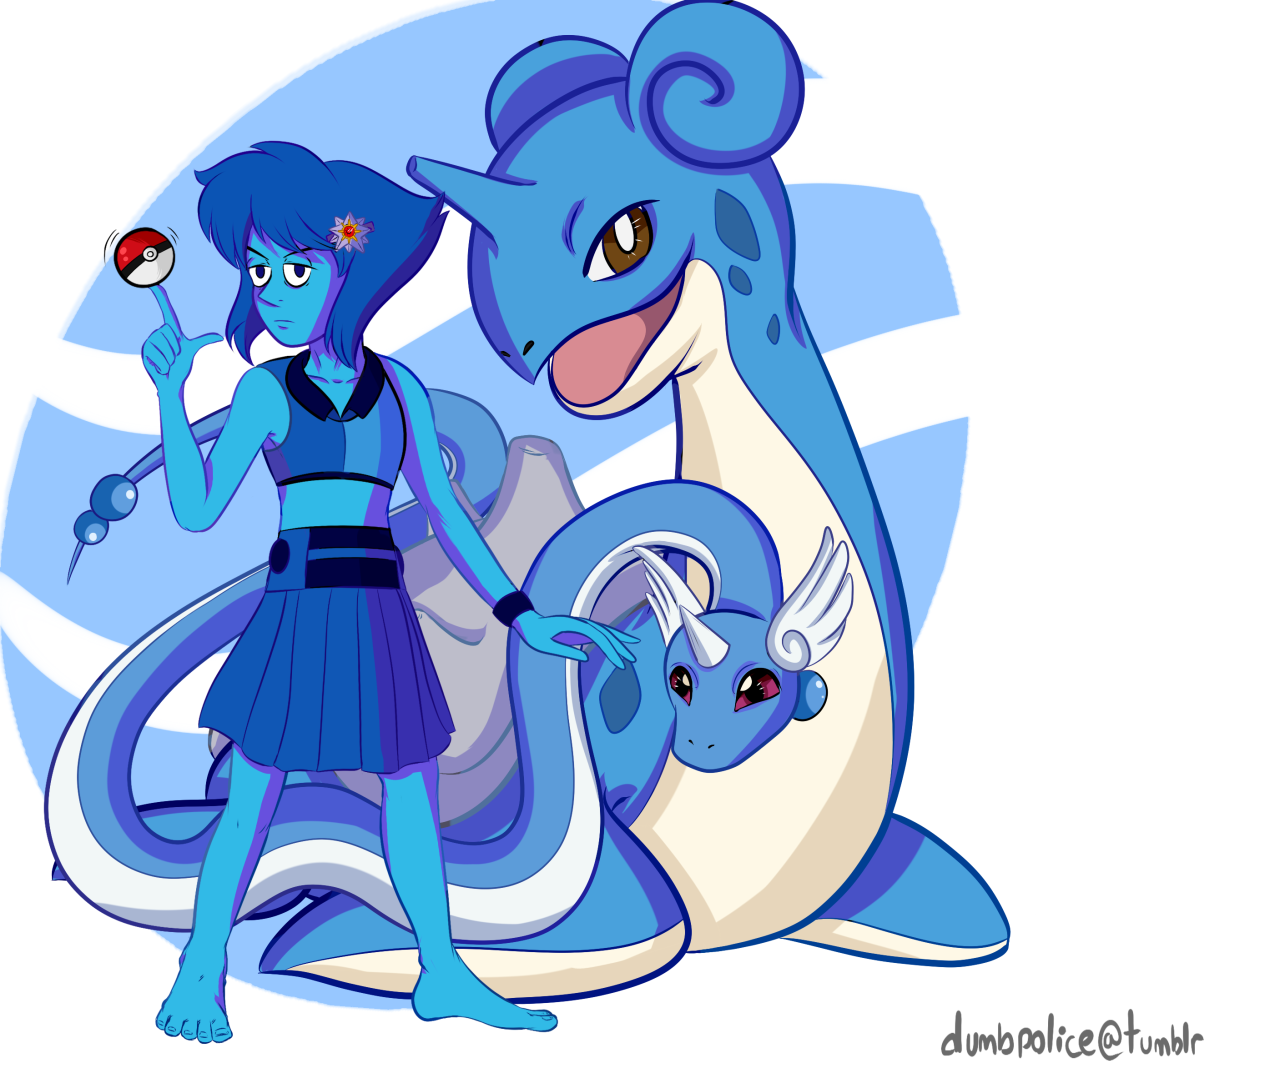 In celebration of all this Pokémon stuff that's been going on lately, I drew a follow up on this old thing I did a couple years ago. ヽ(*´∀`)ノ゙ (Click 'em for full view plz and ty)